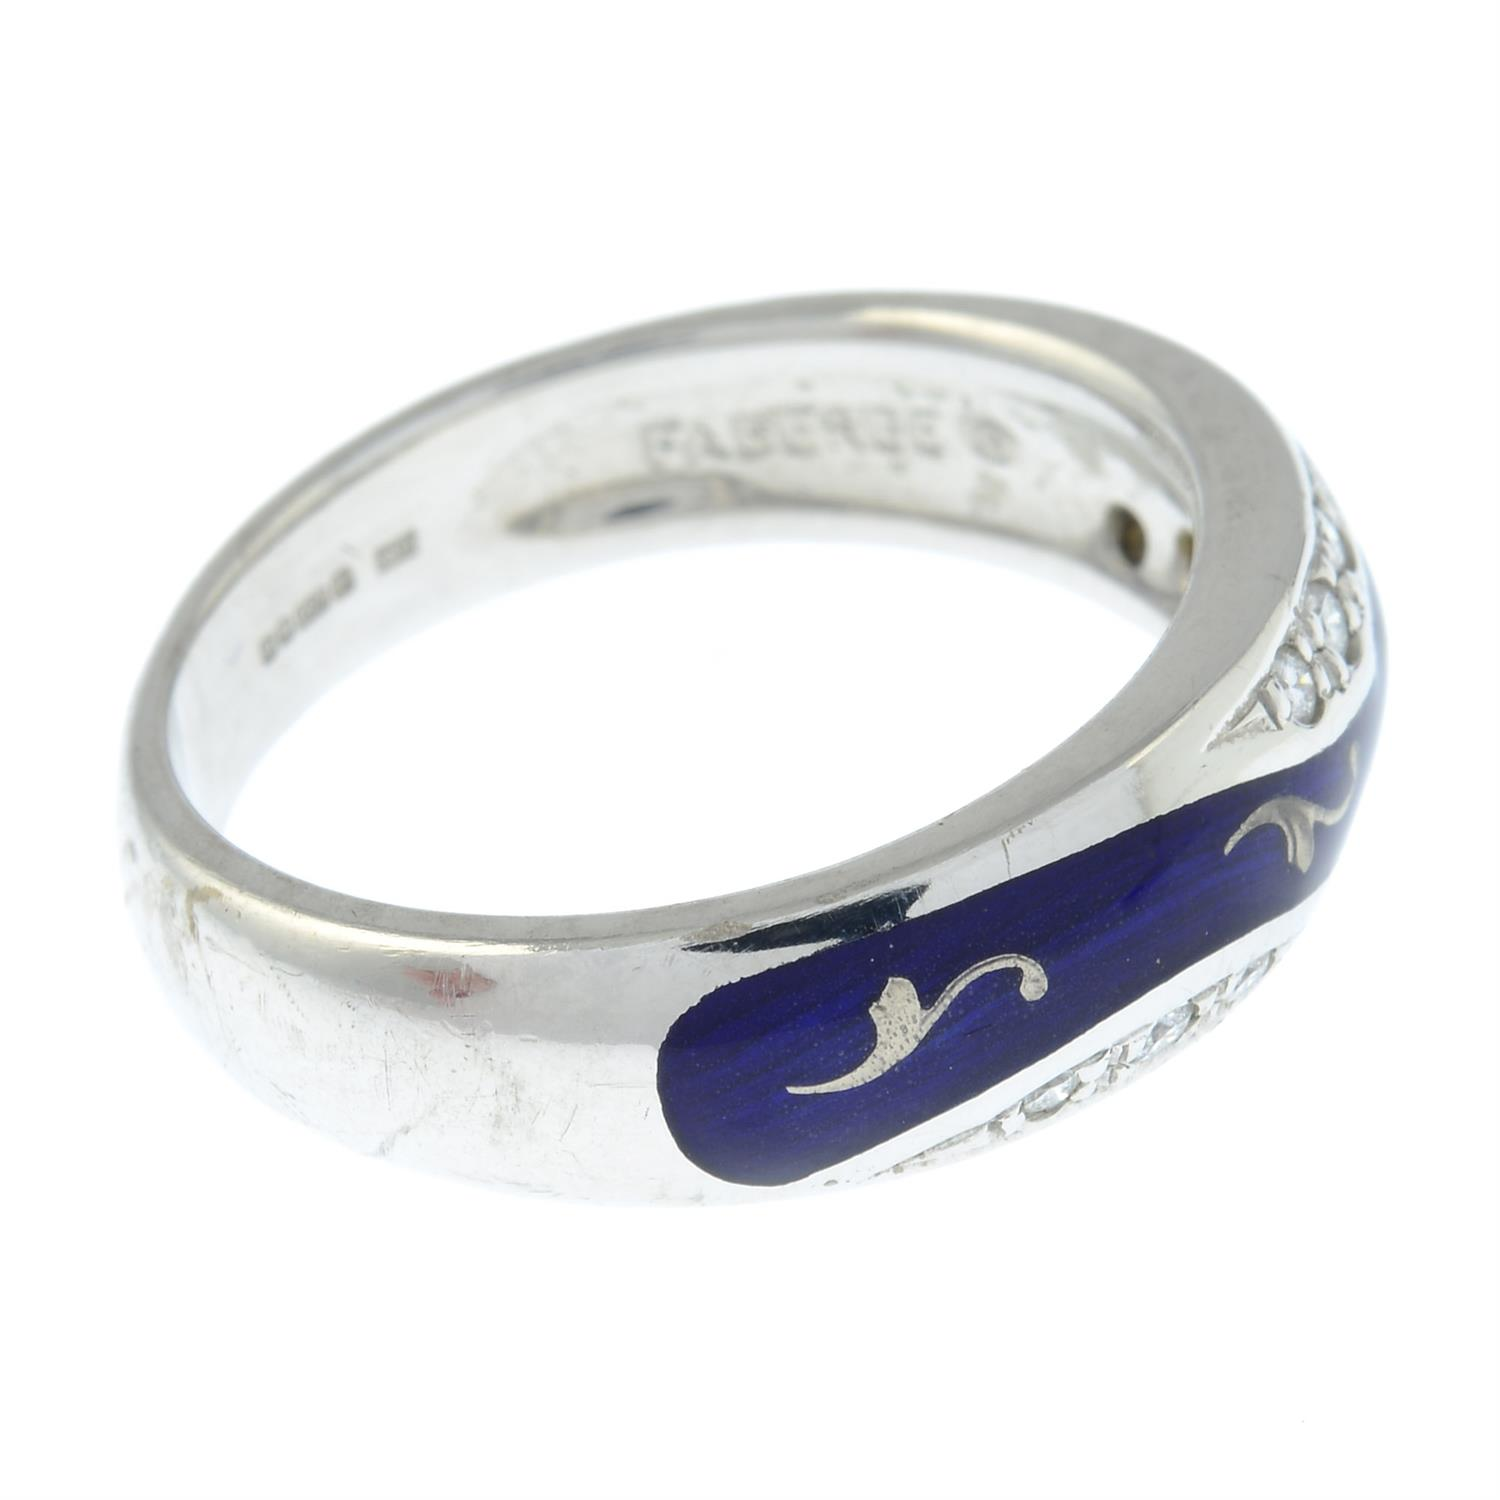 A limited edition 18ct gold diamond and blue enamel ring, by Fabergé. - Image 4 of 6